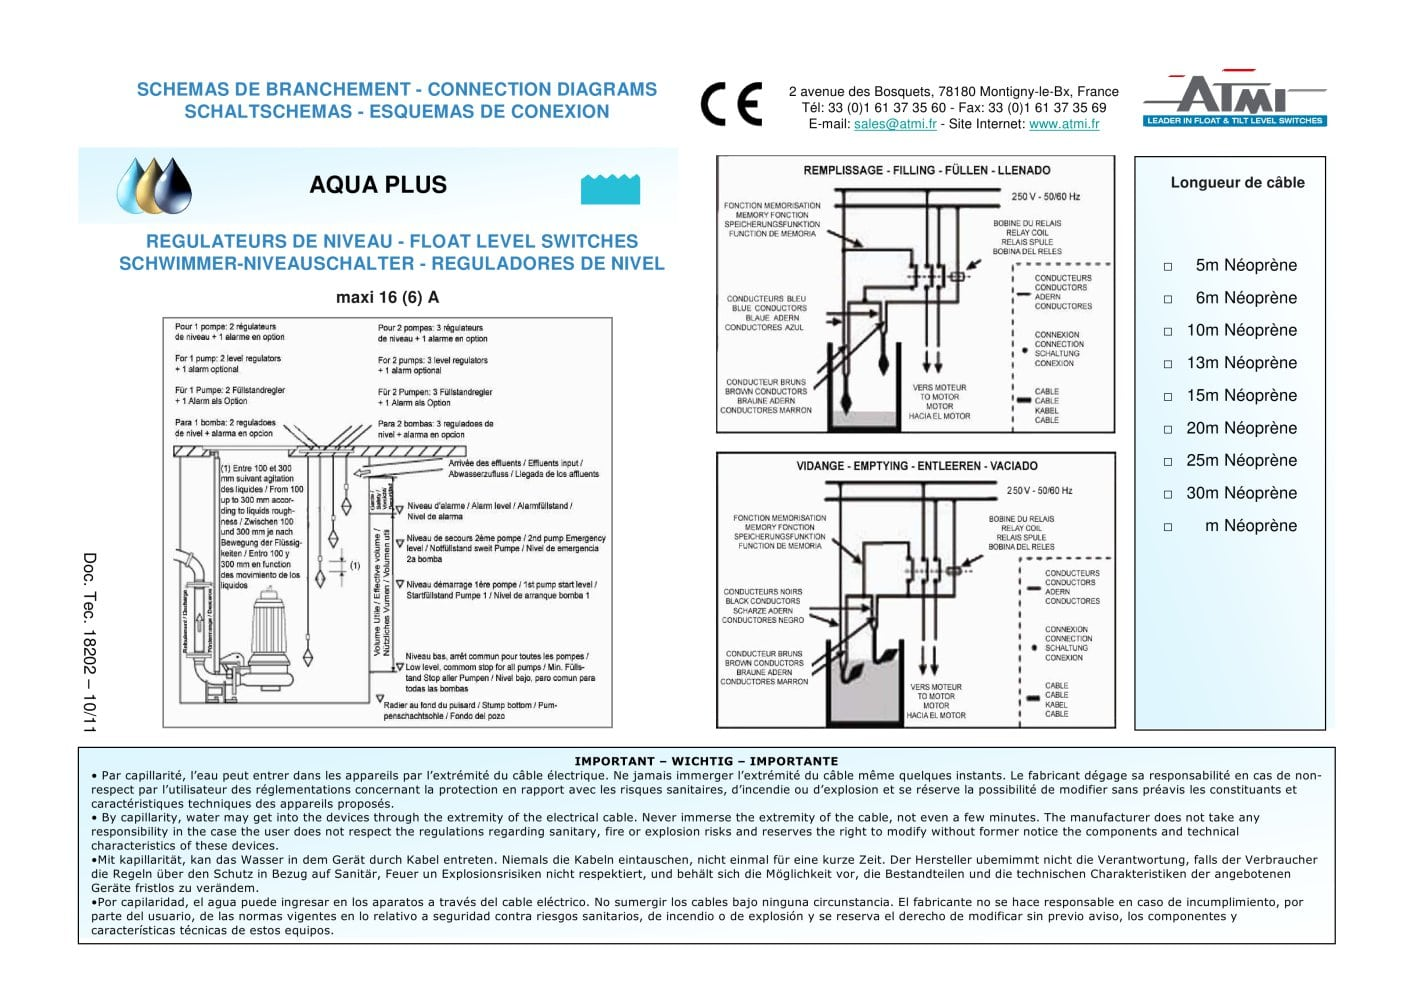 Wiring Diagrams Aqua Plus Atmi Pdf Catalogue Technical For Dummies 1 Pages